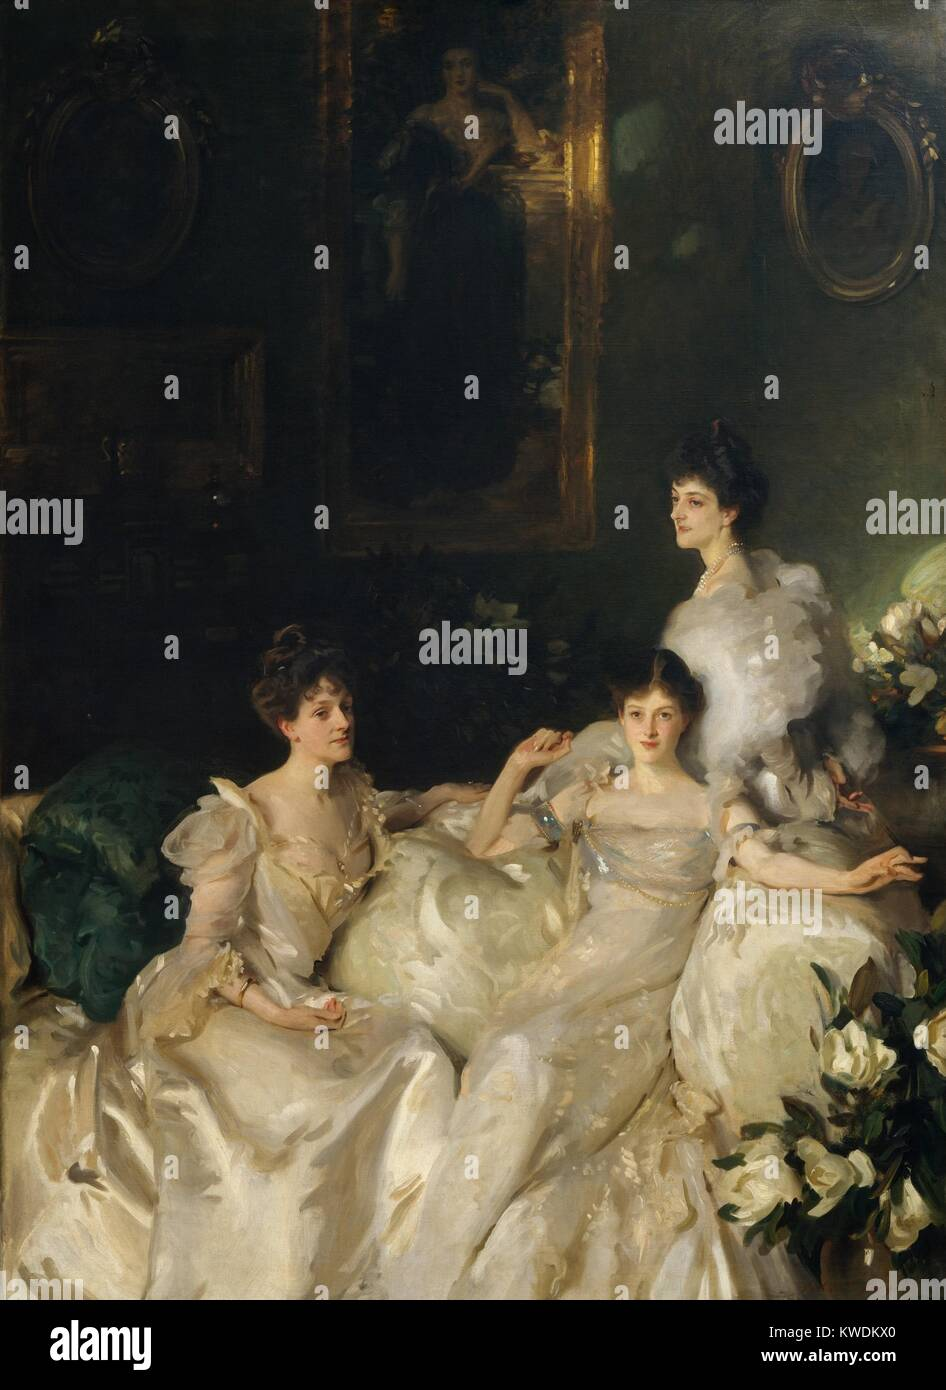 THE WYNDHAM SISTERS, by John Singer Sargent, 1897, American painting, oil on canvas. Lady Elcho, Mrs. Adeane, and - Stock Image